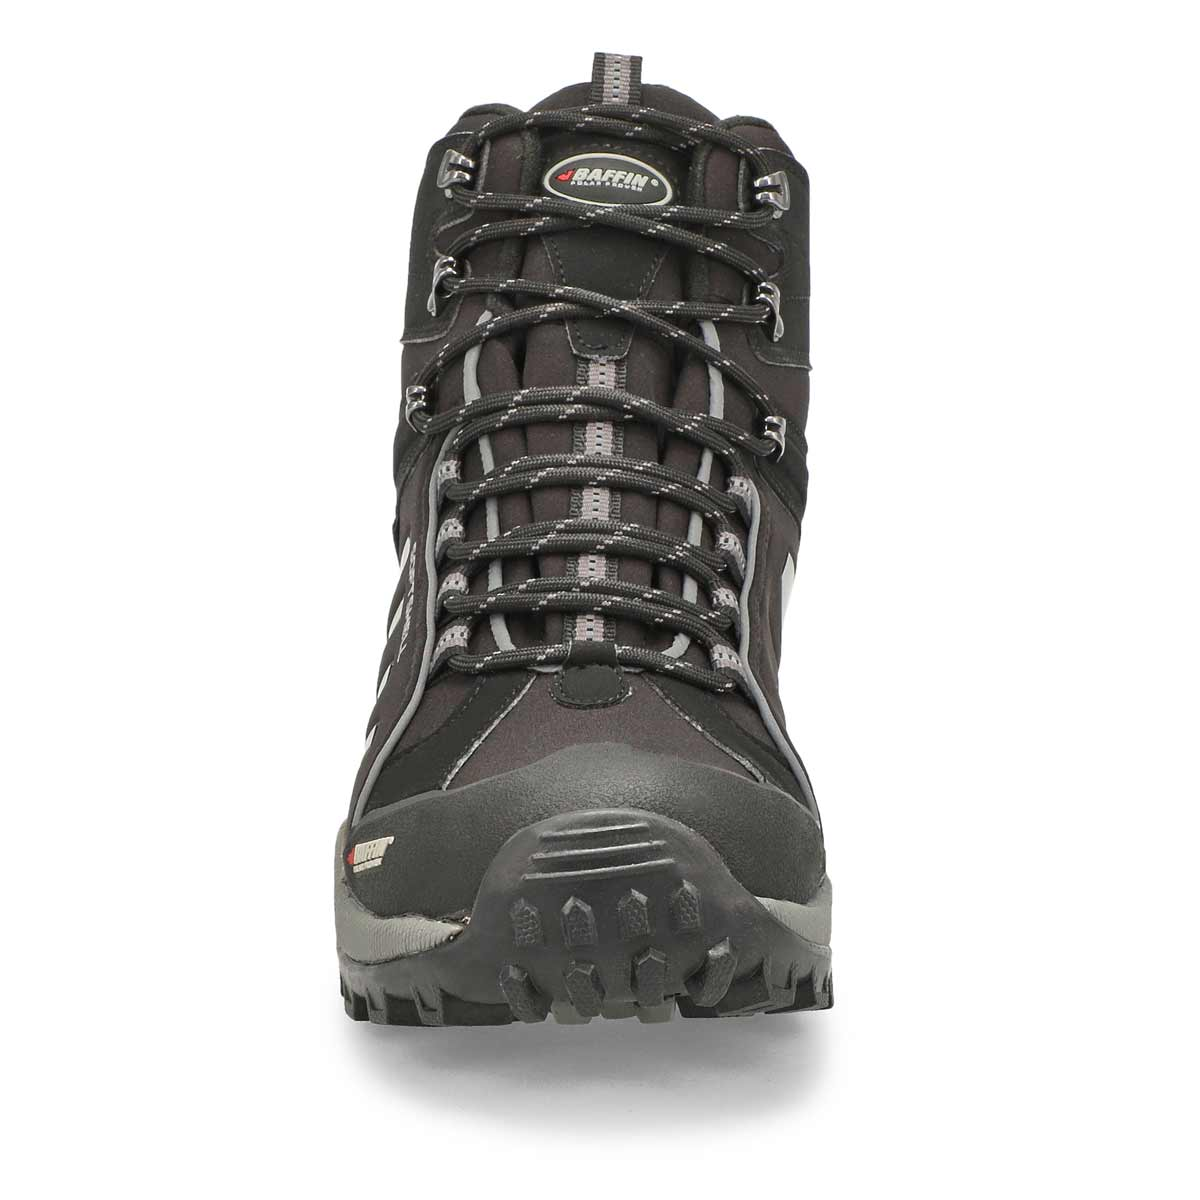 Mns Zone blk wtpf lace up winter boot